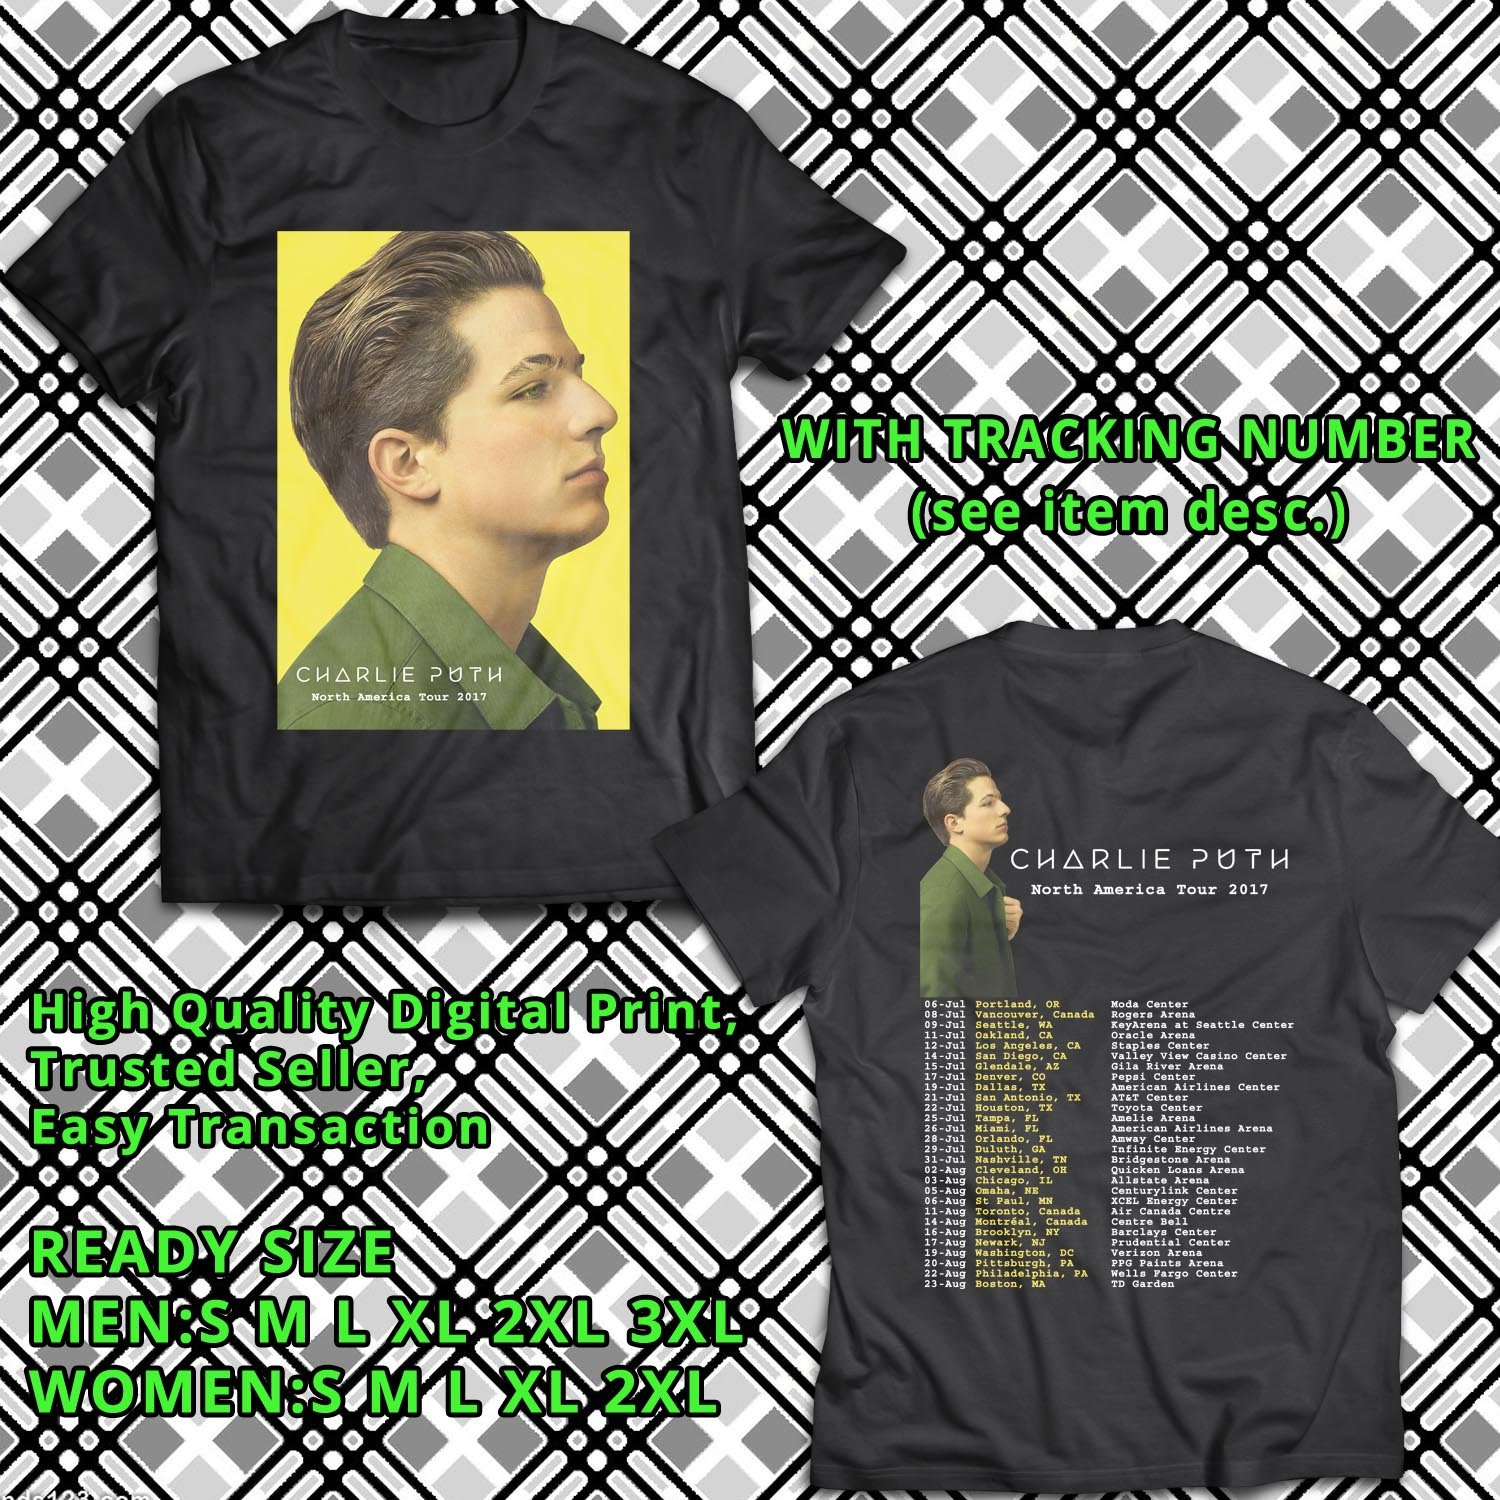 HITS CHARLIE PUTH NORTH AMERICA TOUR 2017 BLACK TEE'S 2SIDE MAN WOMEN ASTR 776